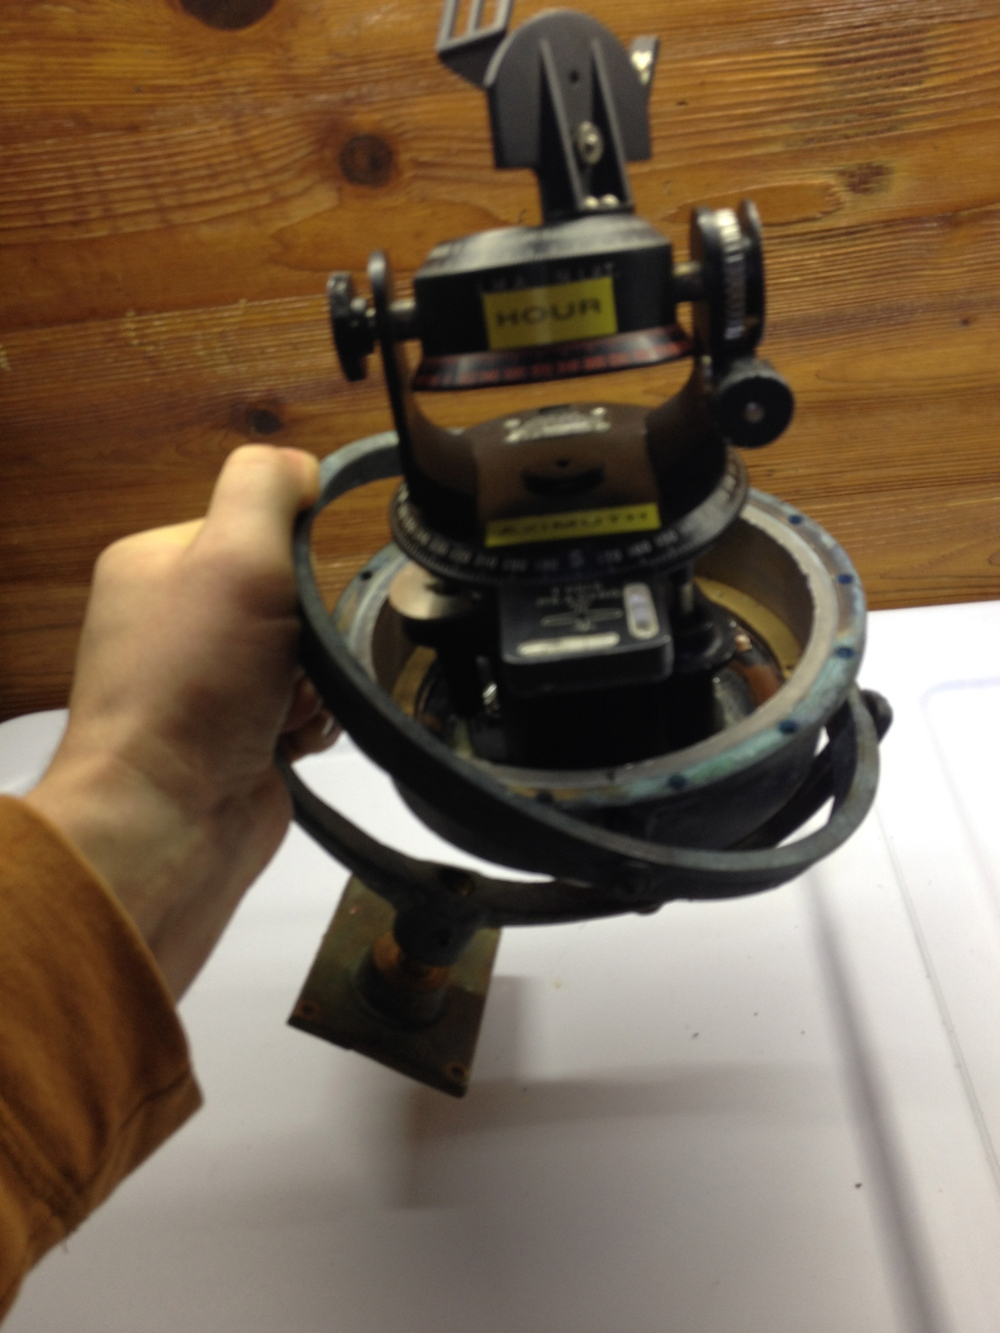 The Gimbal mounted Astro Compass!